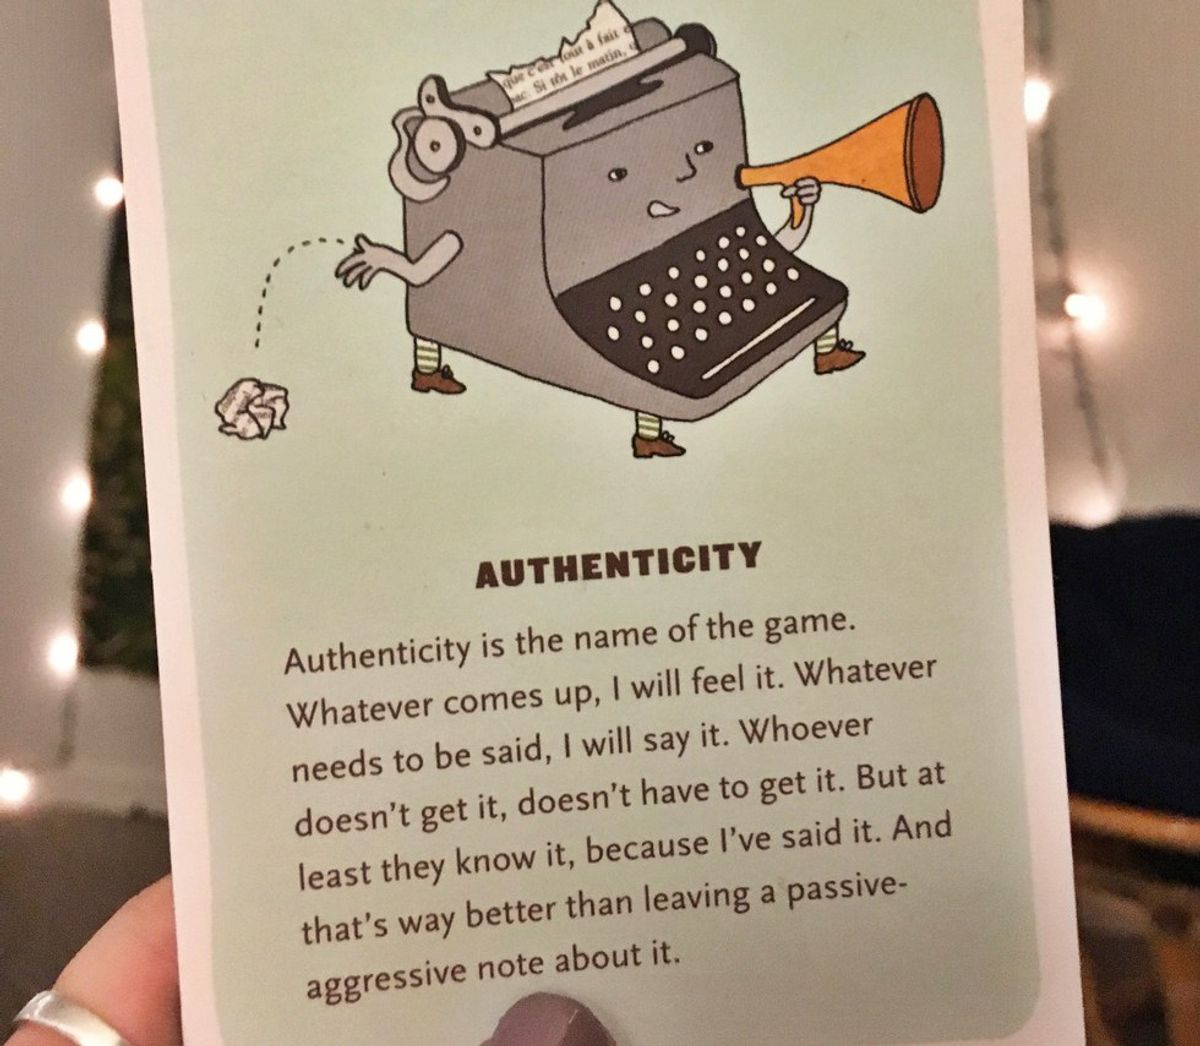 500 Words On Authenticity